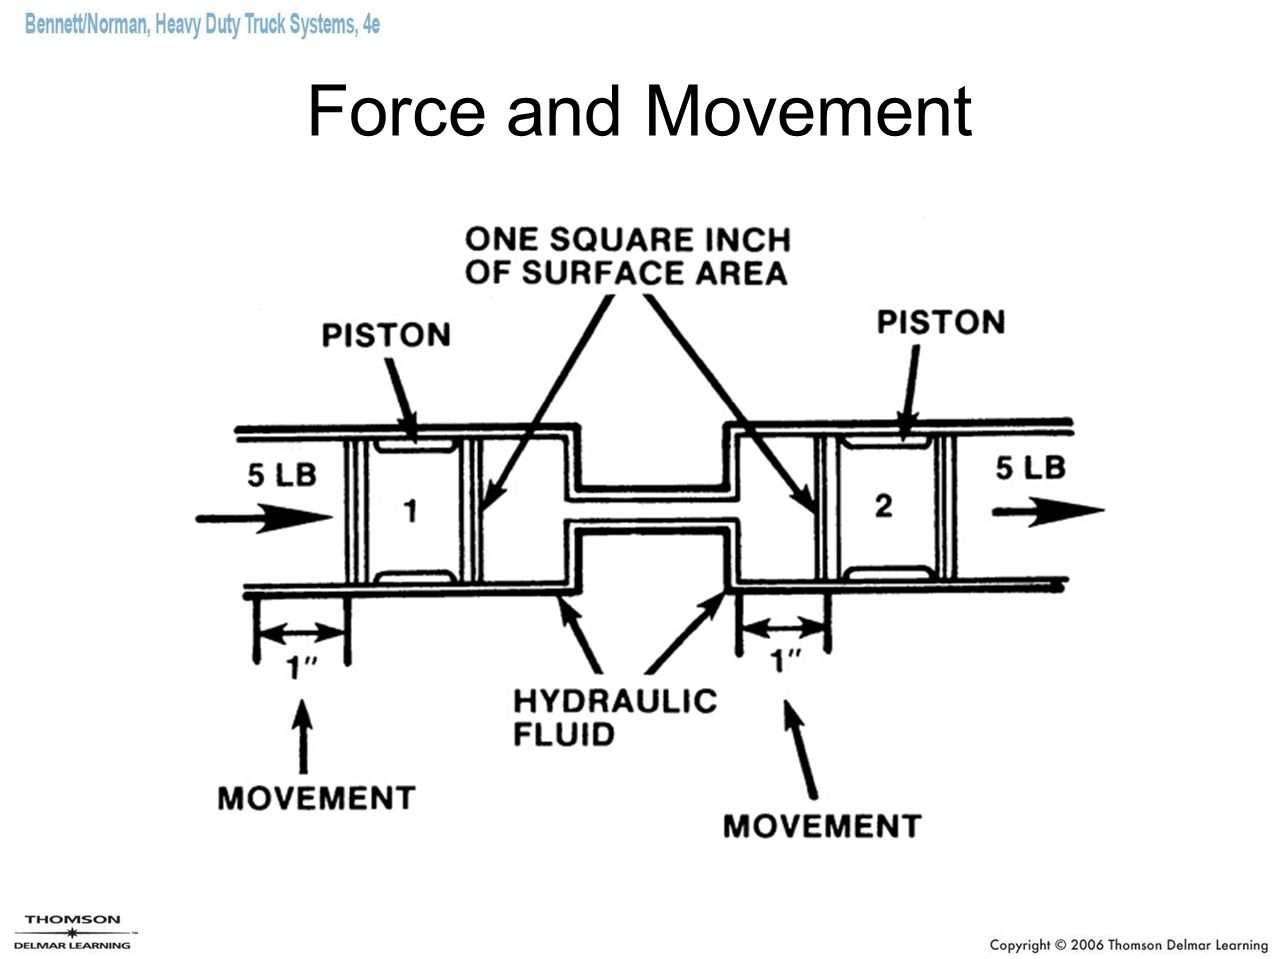 Force and Movement